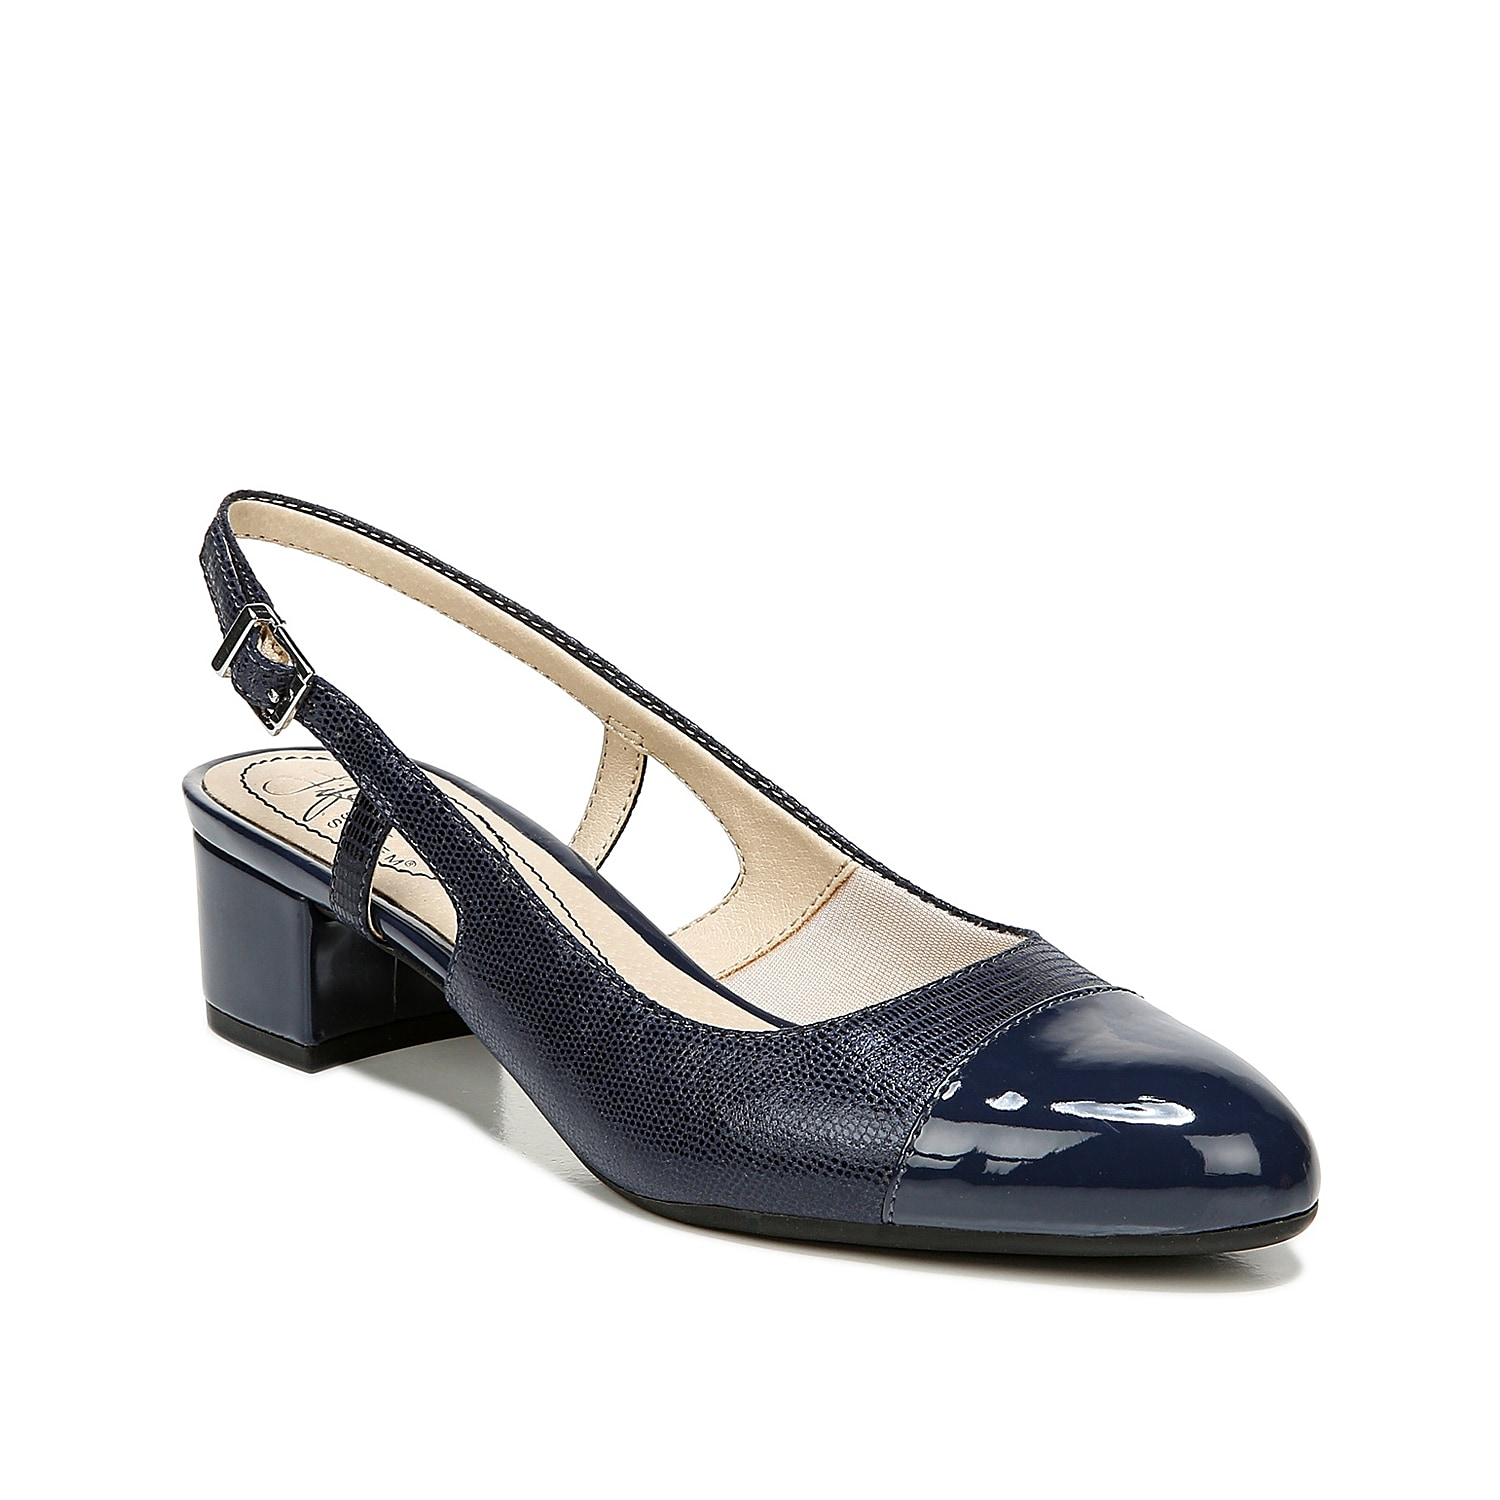 Turn your office attire up a notch with the Everdeen pump from LifeStride. The smooth upper and round cap toe will pair with a midi skirt and ruffled blouse!